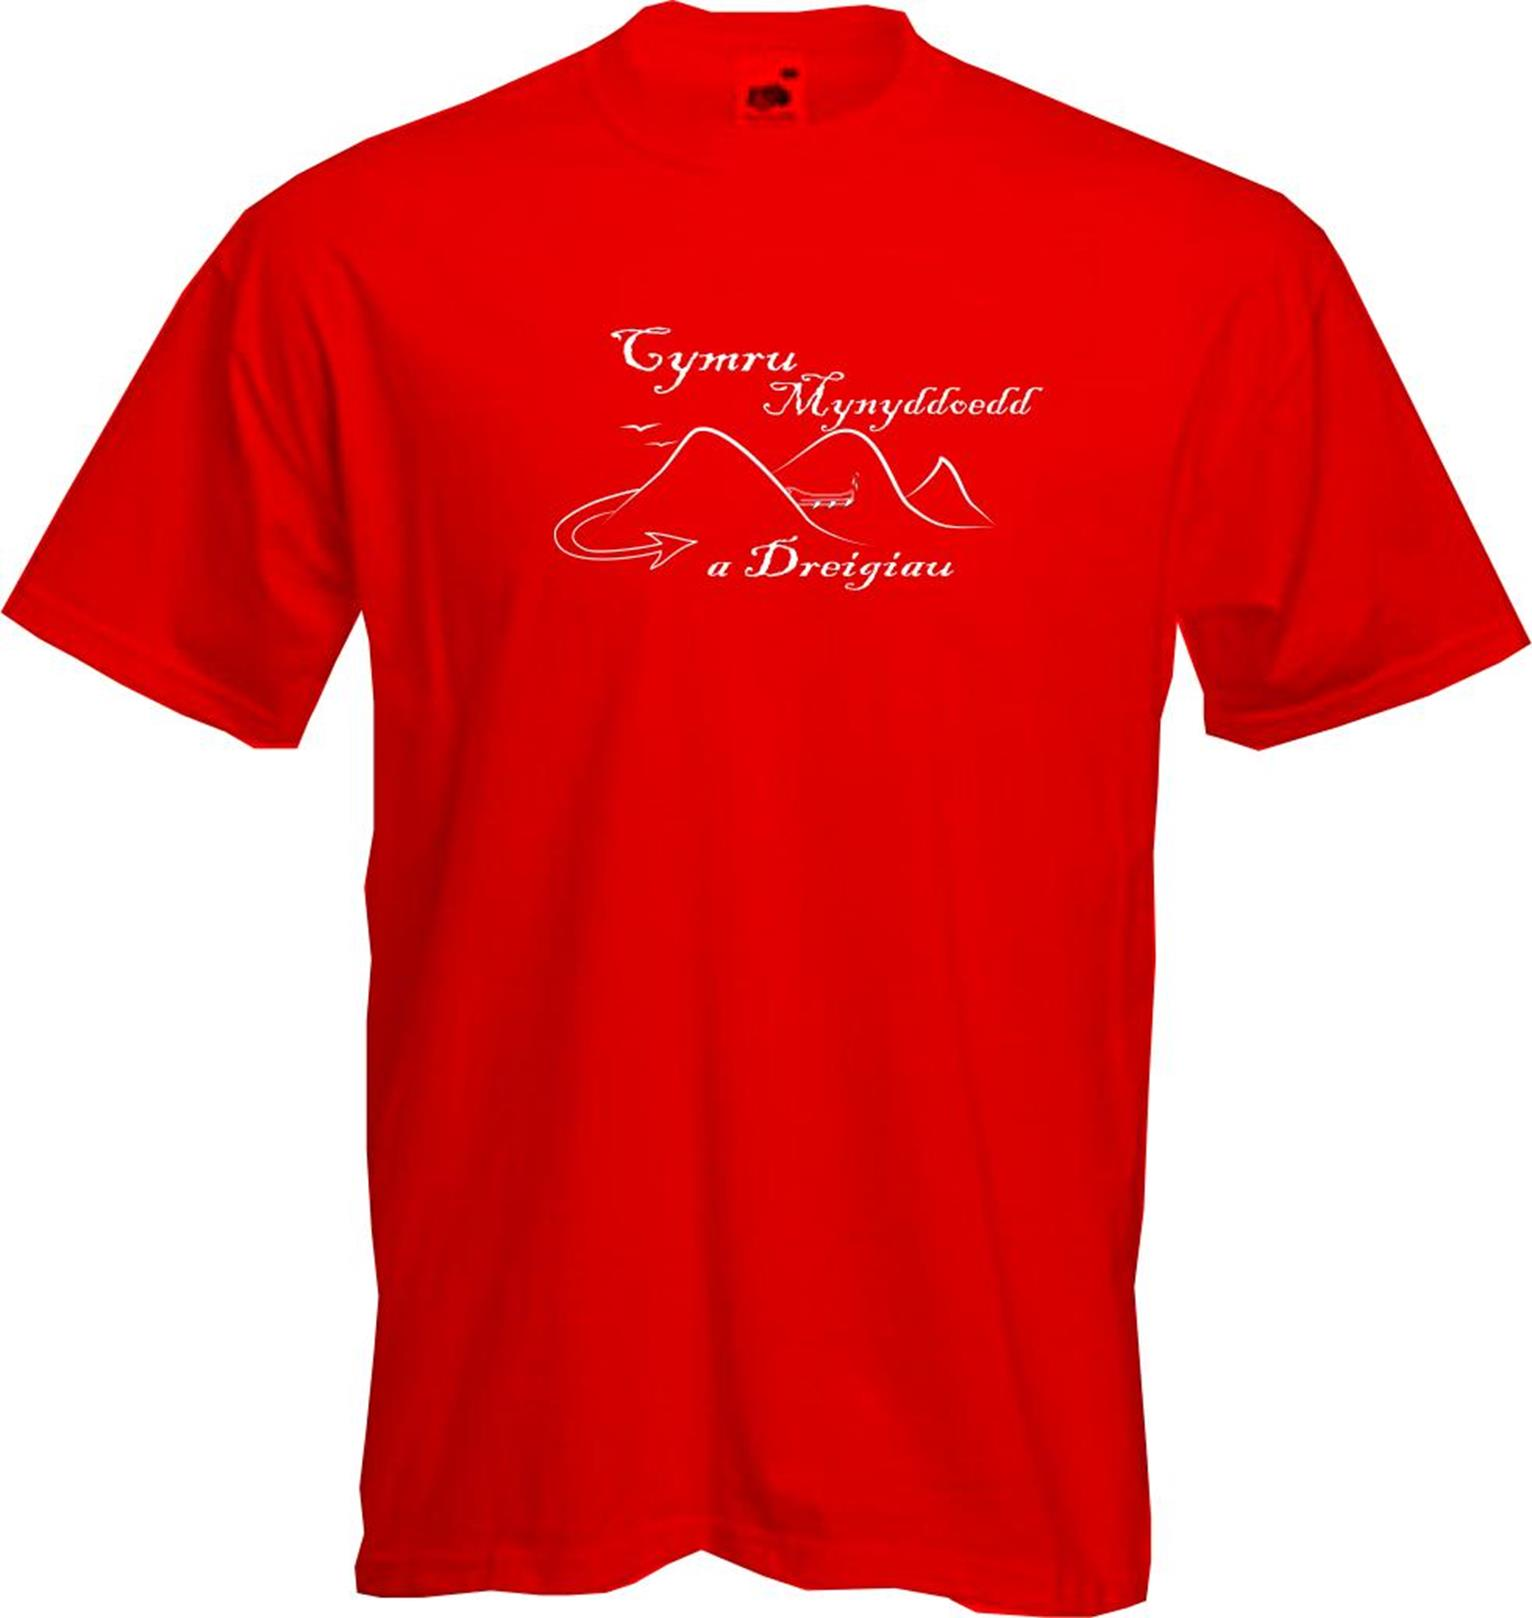 Welsh Cymru T Shirt St Davids Dragons Wales Cool Quality NEW New T Shirts Funny Tops Tee New Unisex Funny Tops in T Shirts from Men 39 s Clothing